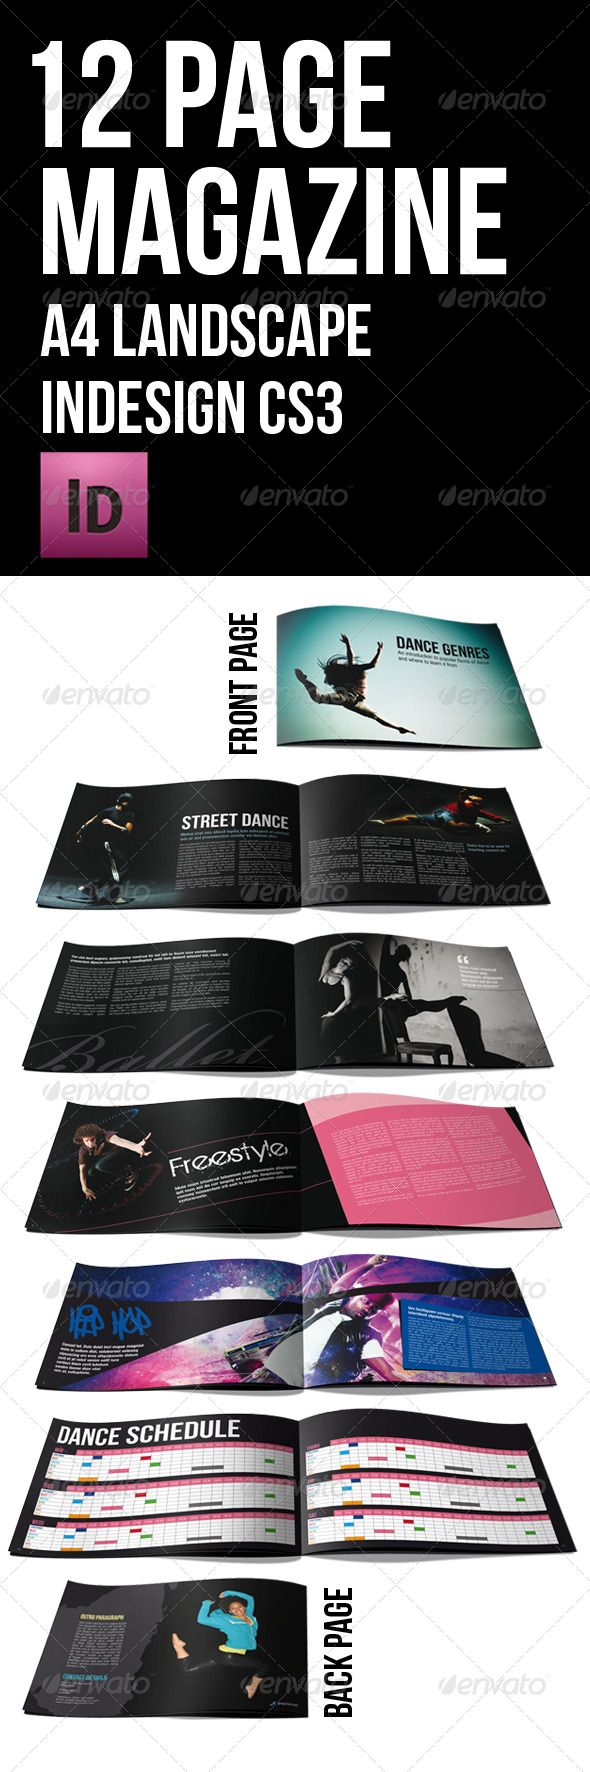 109 best images about print templates on pinterest fonts for 12 page brochure template